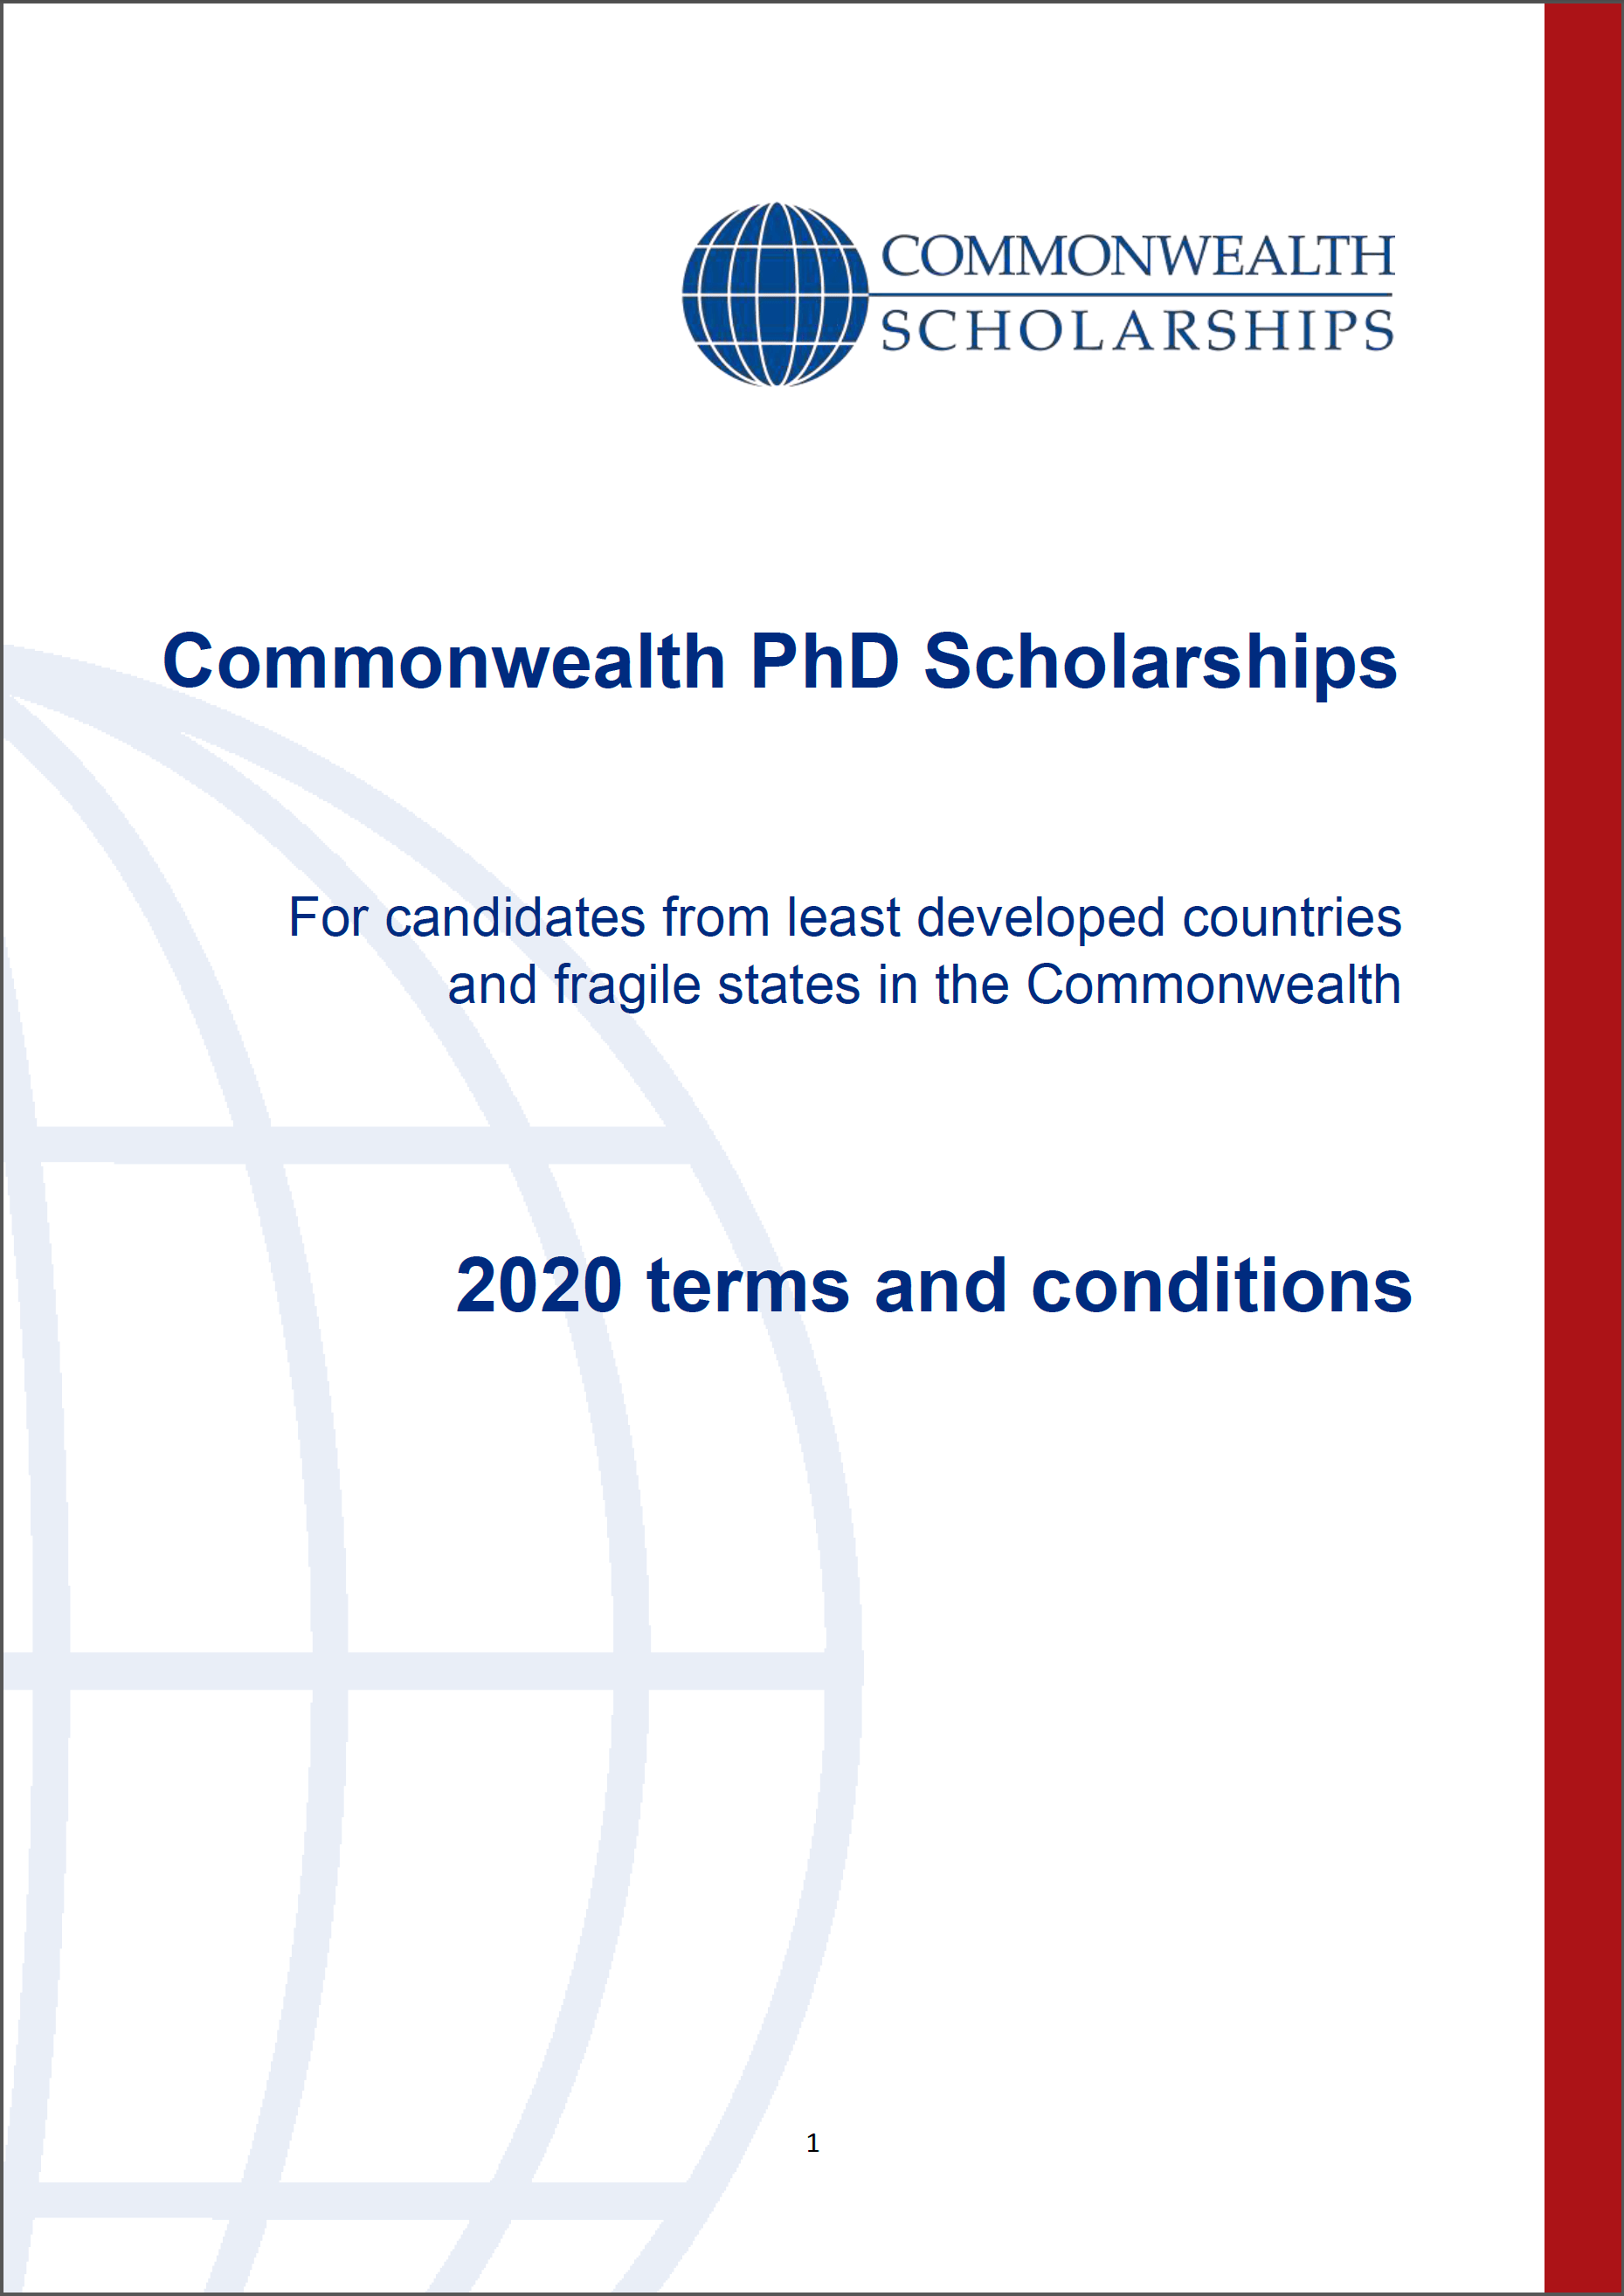 COMMONWEALTH SCHOLARSHIPS 2019